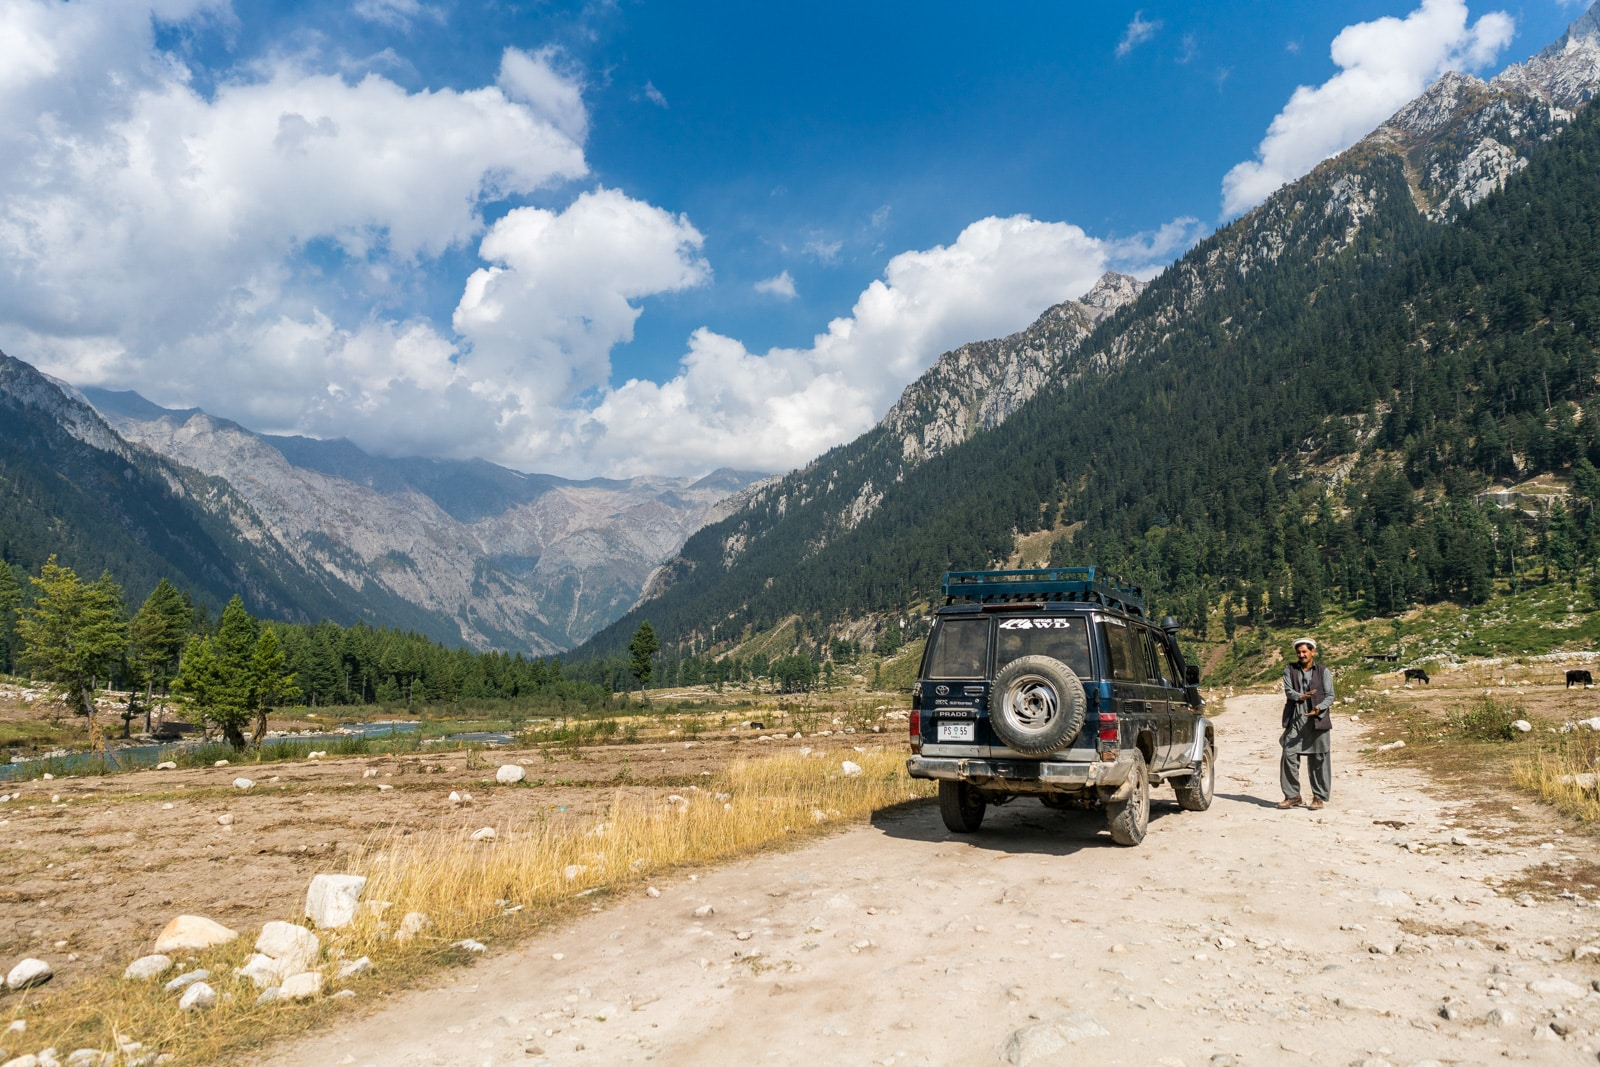 A driver standing next to his Jeep enroute to Kumrat Valley in Pakistan